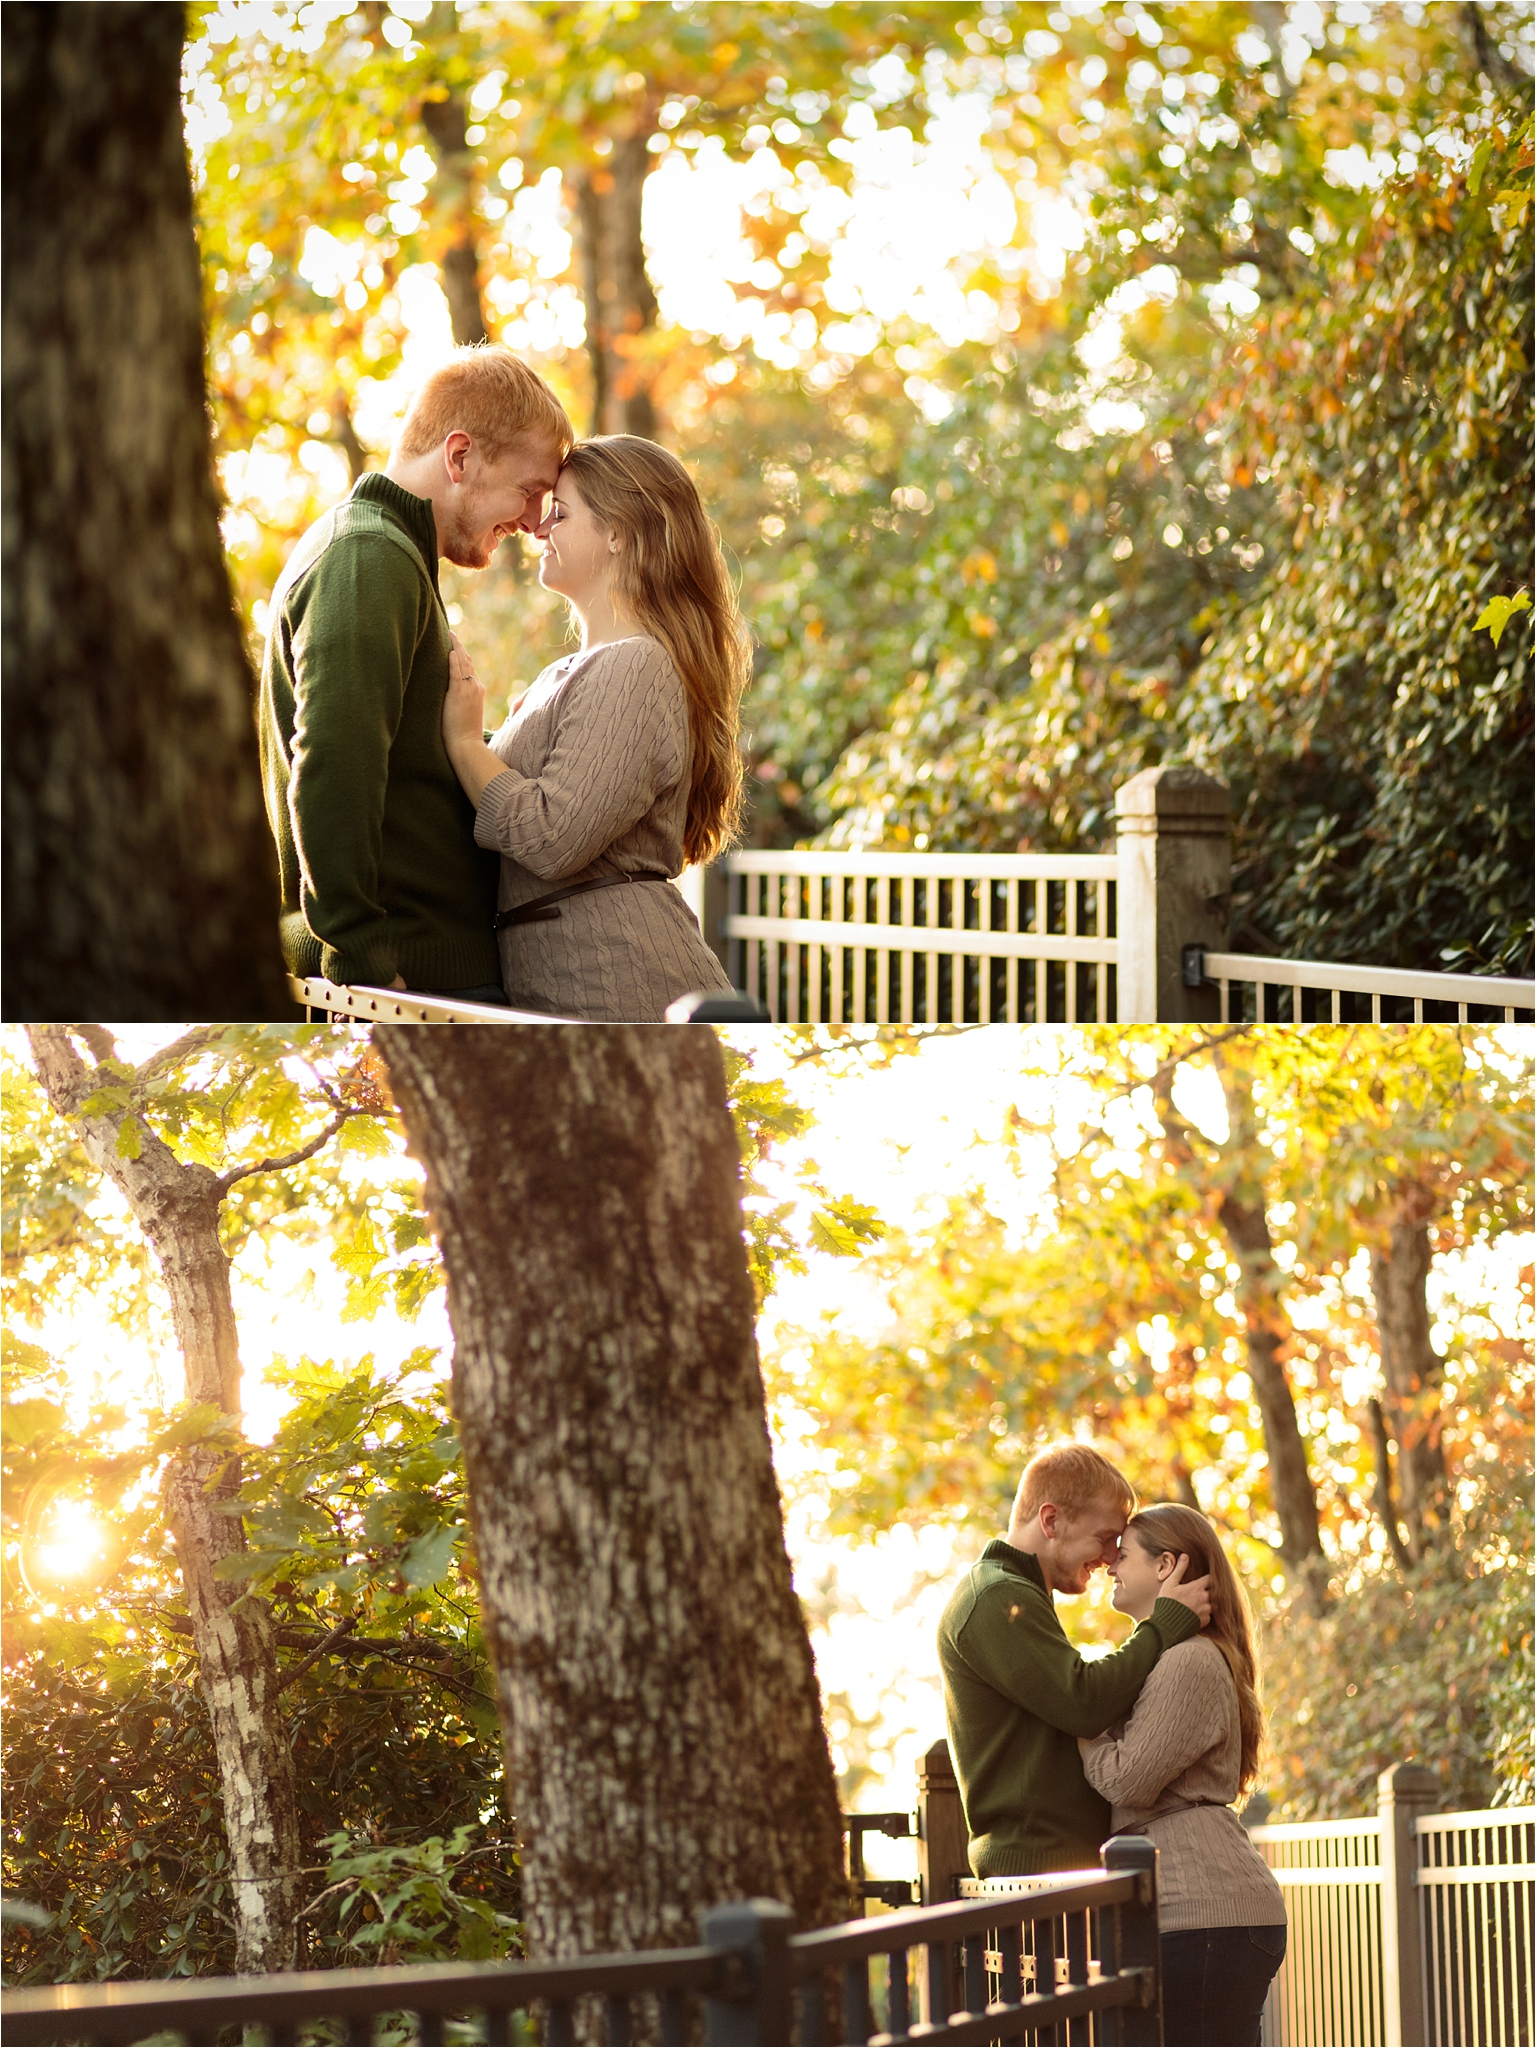 caesars-head-engagement-shoot-19_blog.jpg